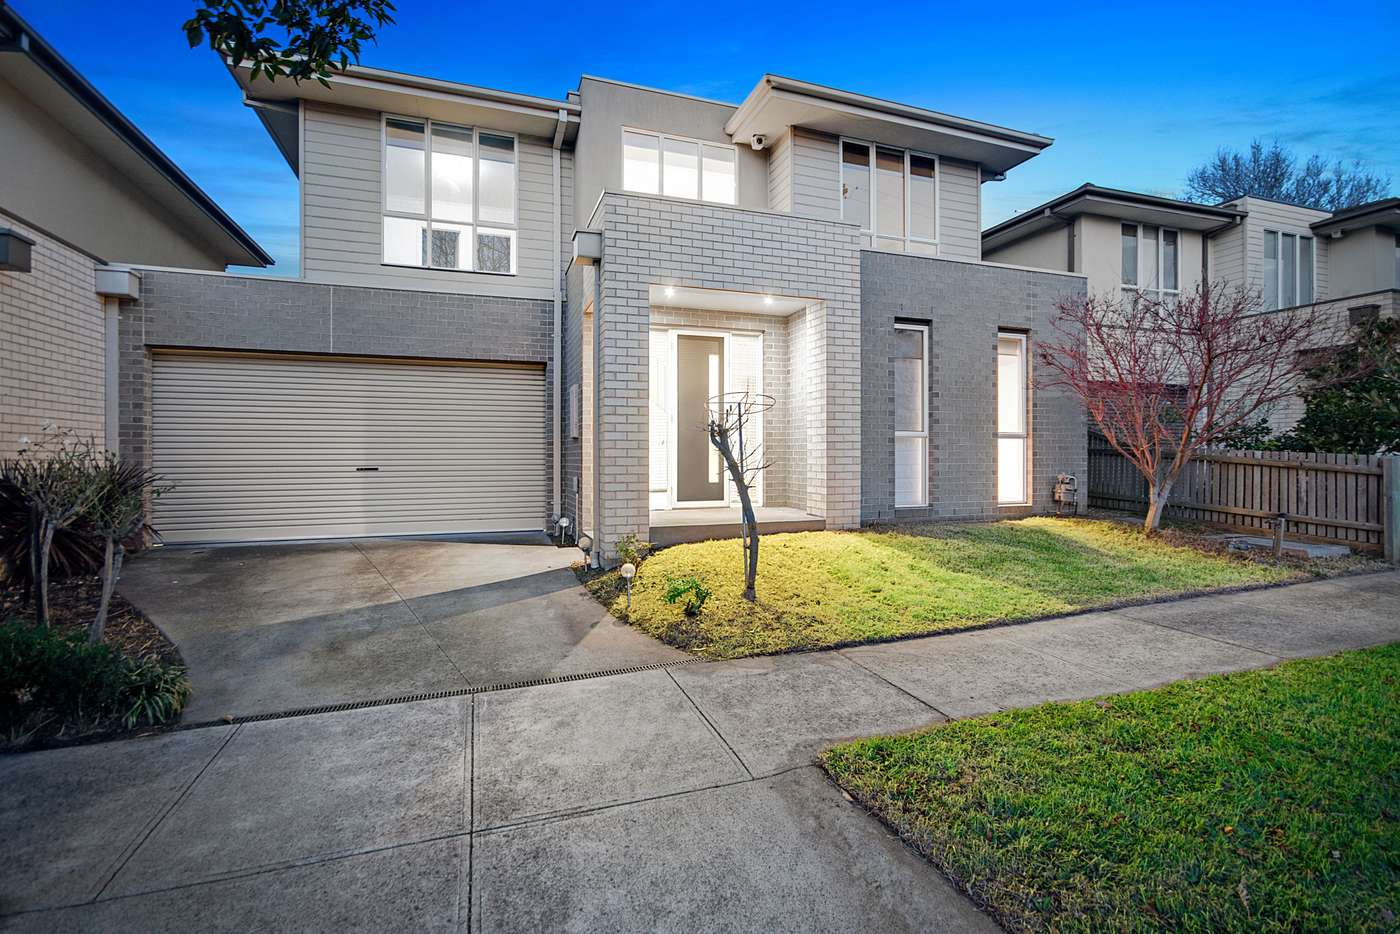 Main view of Homely townhouse listing, 7 Argyle Street, Frankston VIC 3199